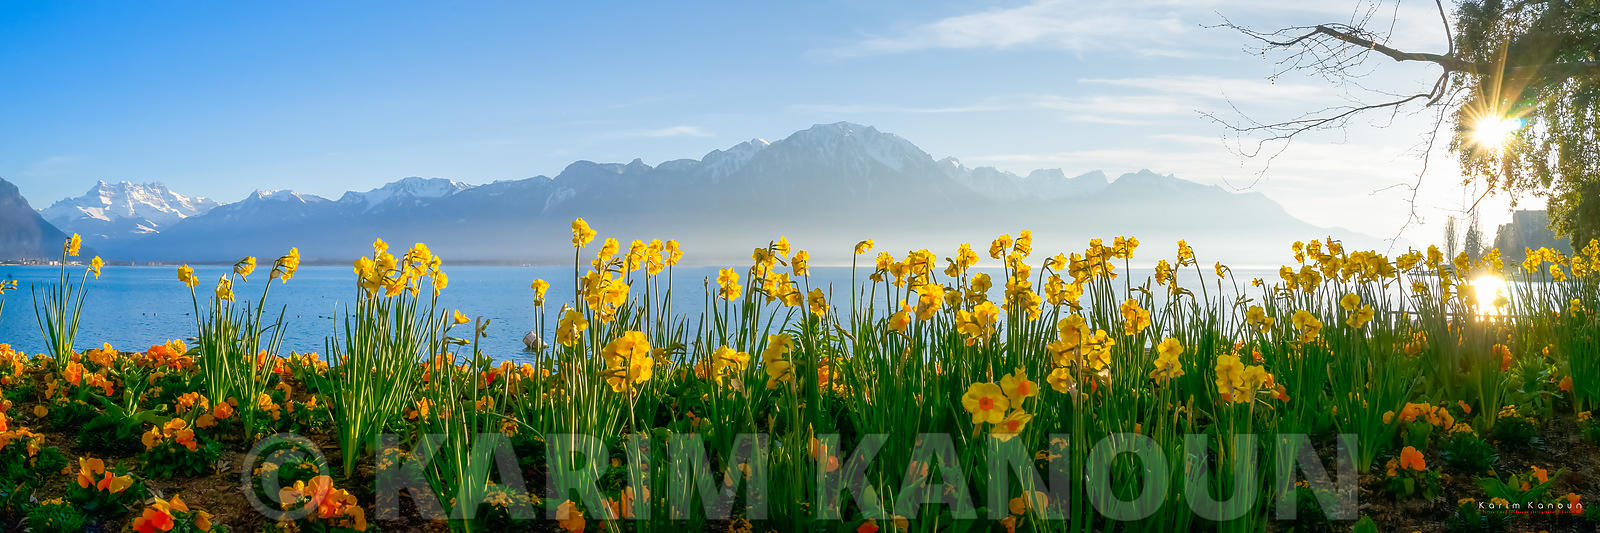 The Alps and Lac Léman from Montreux during the spring season